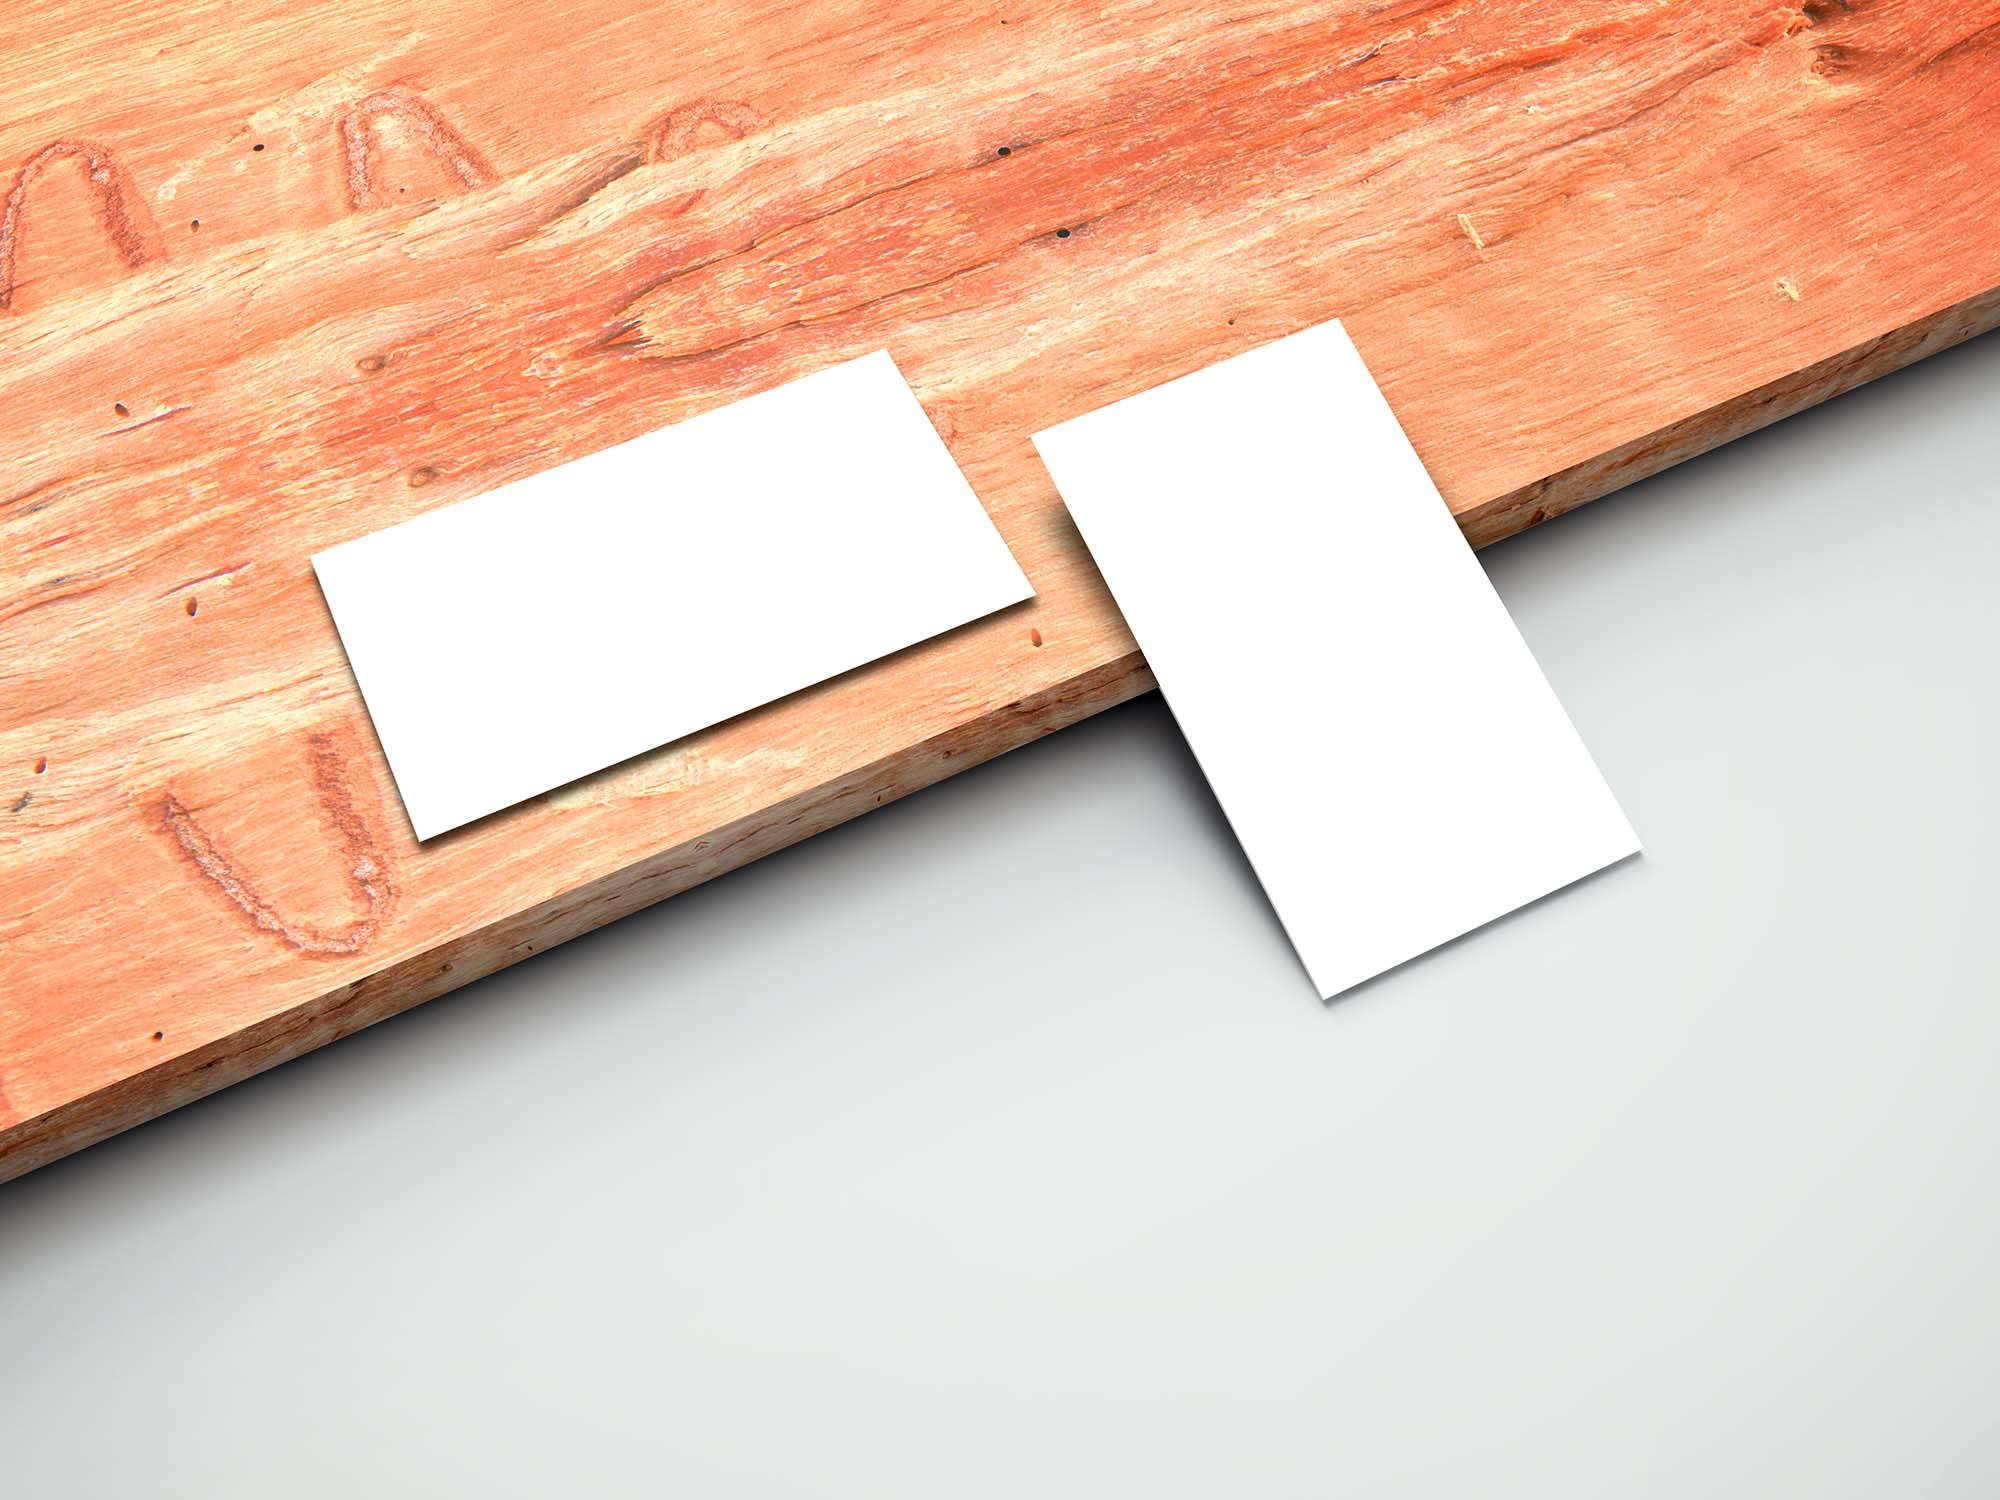 Business Cards on Plank Mockup 2